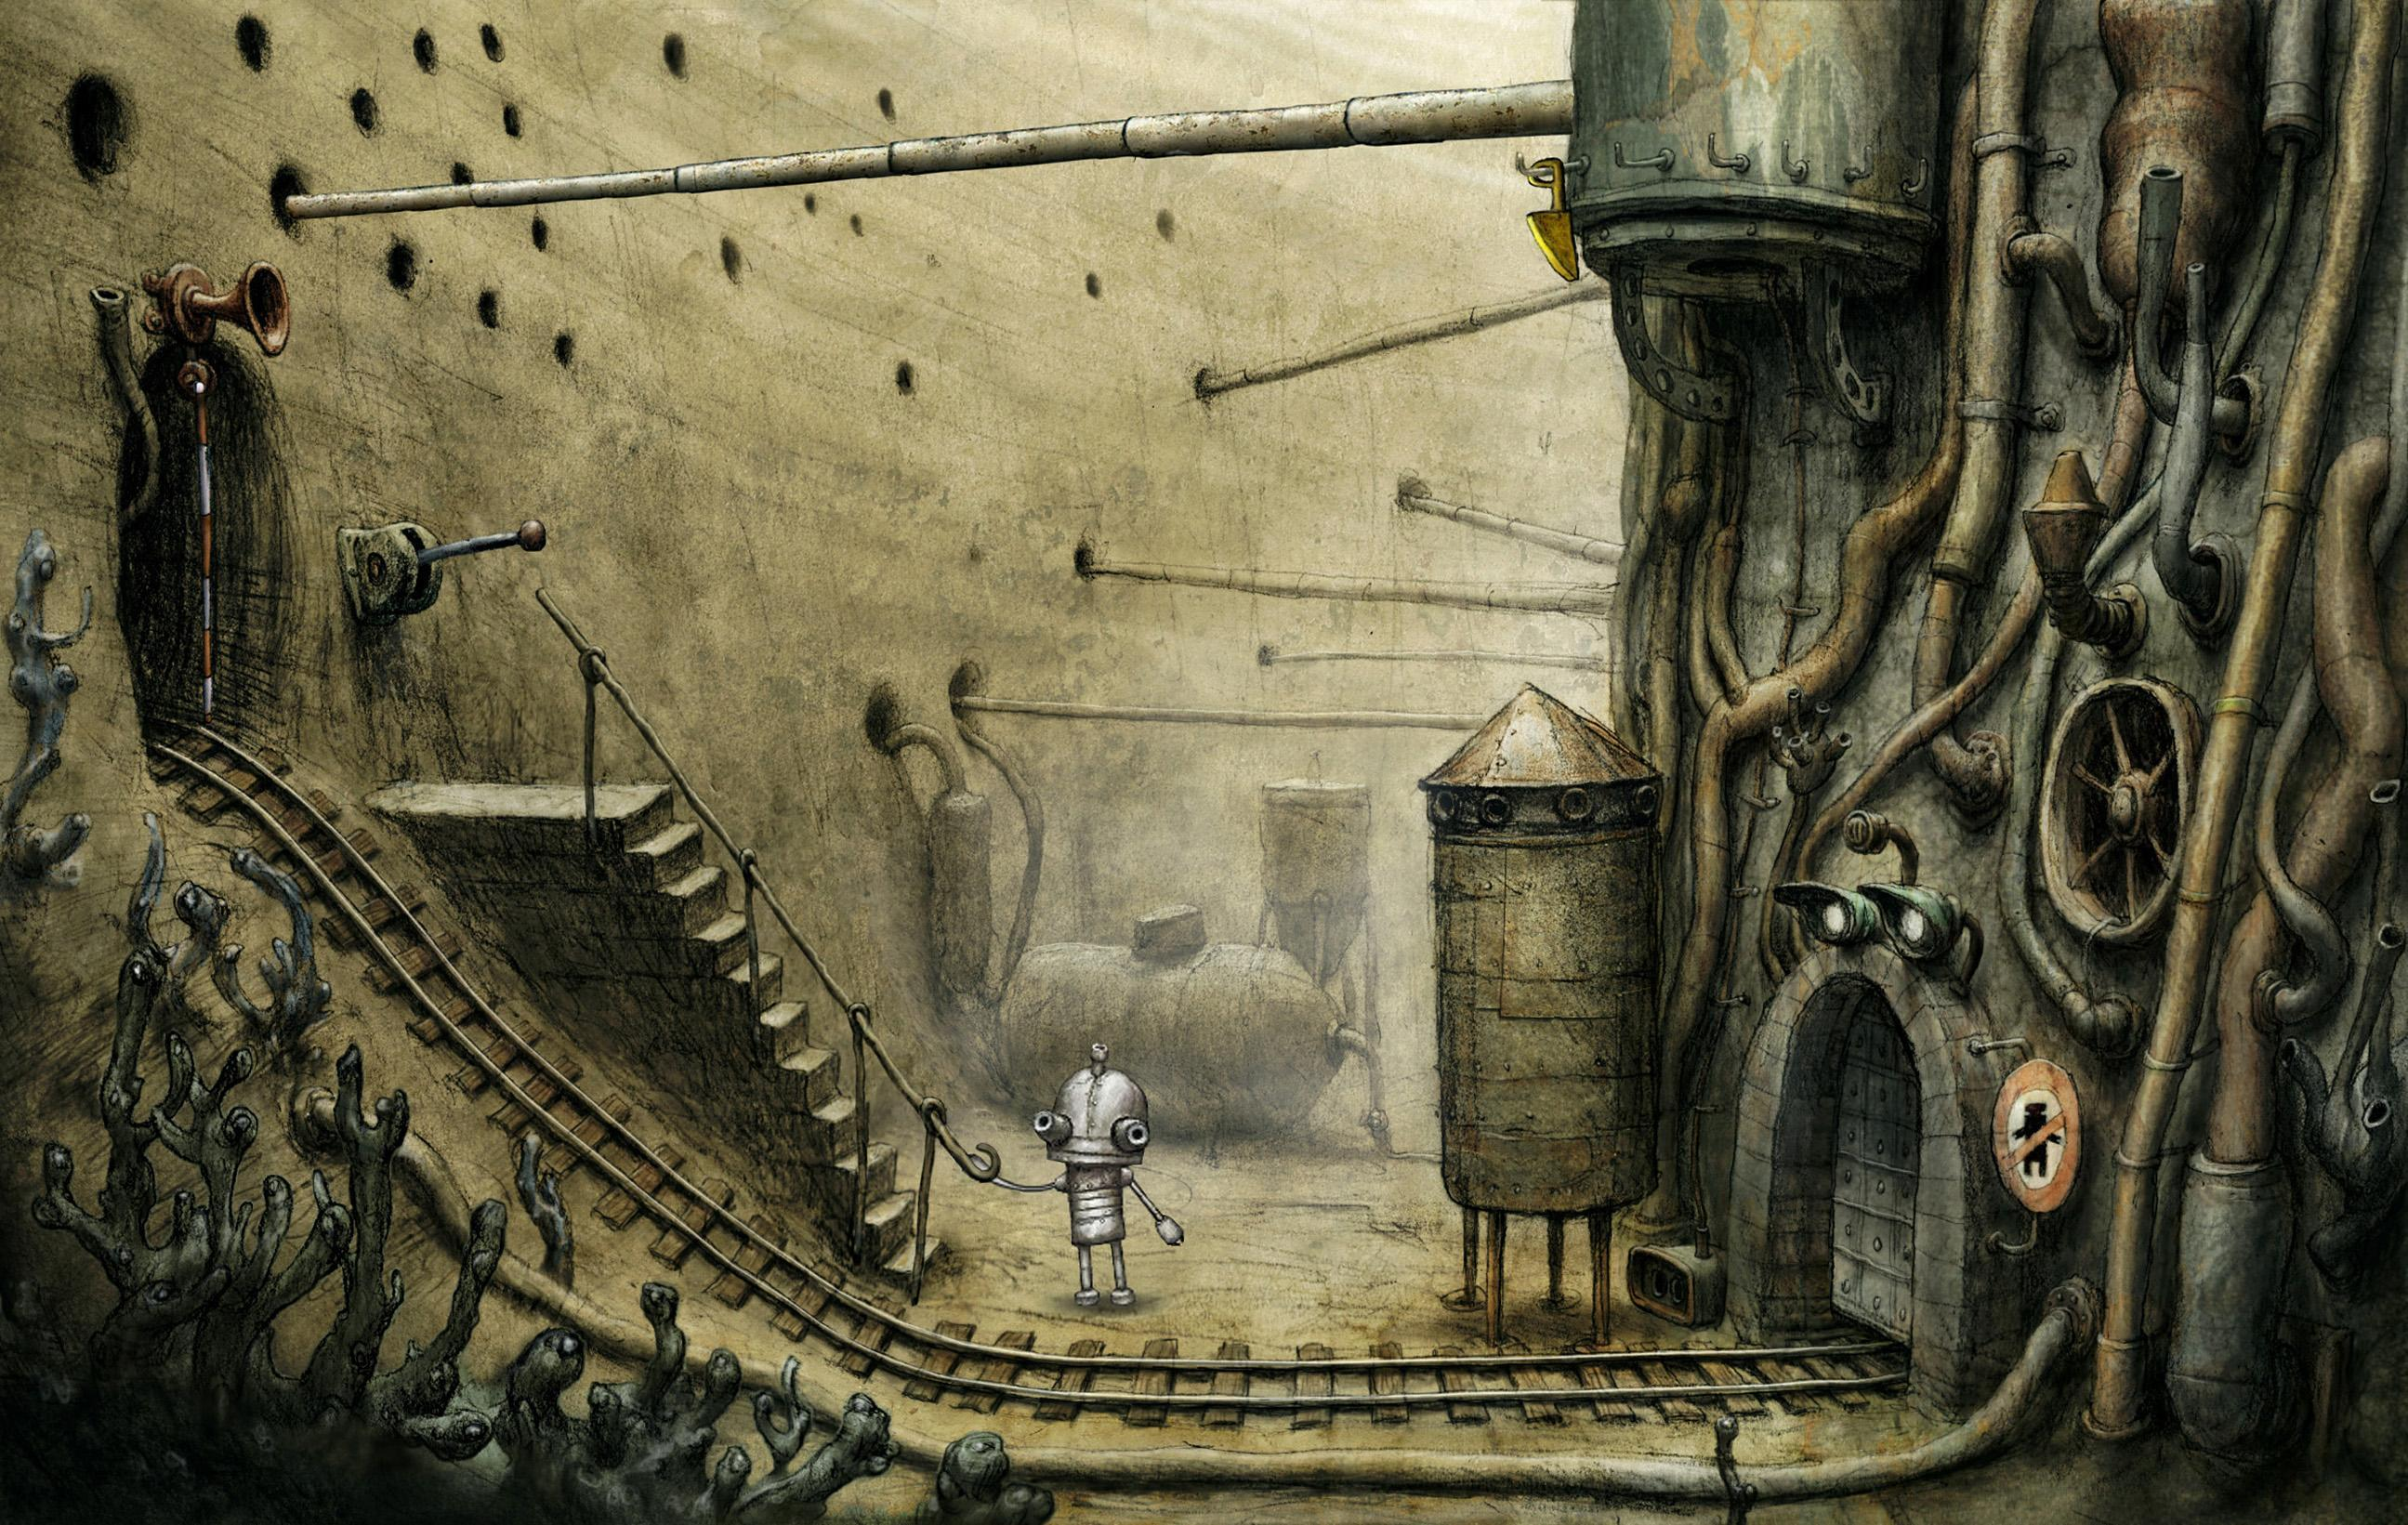 Machinarium Demo 2.6.9 Screenshot 10